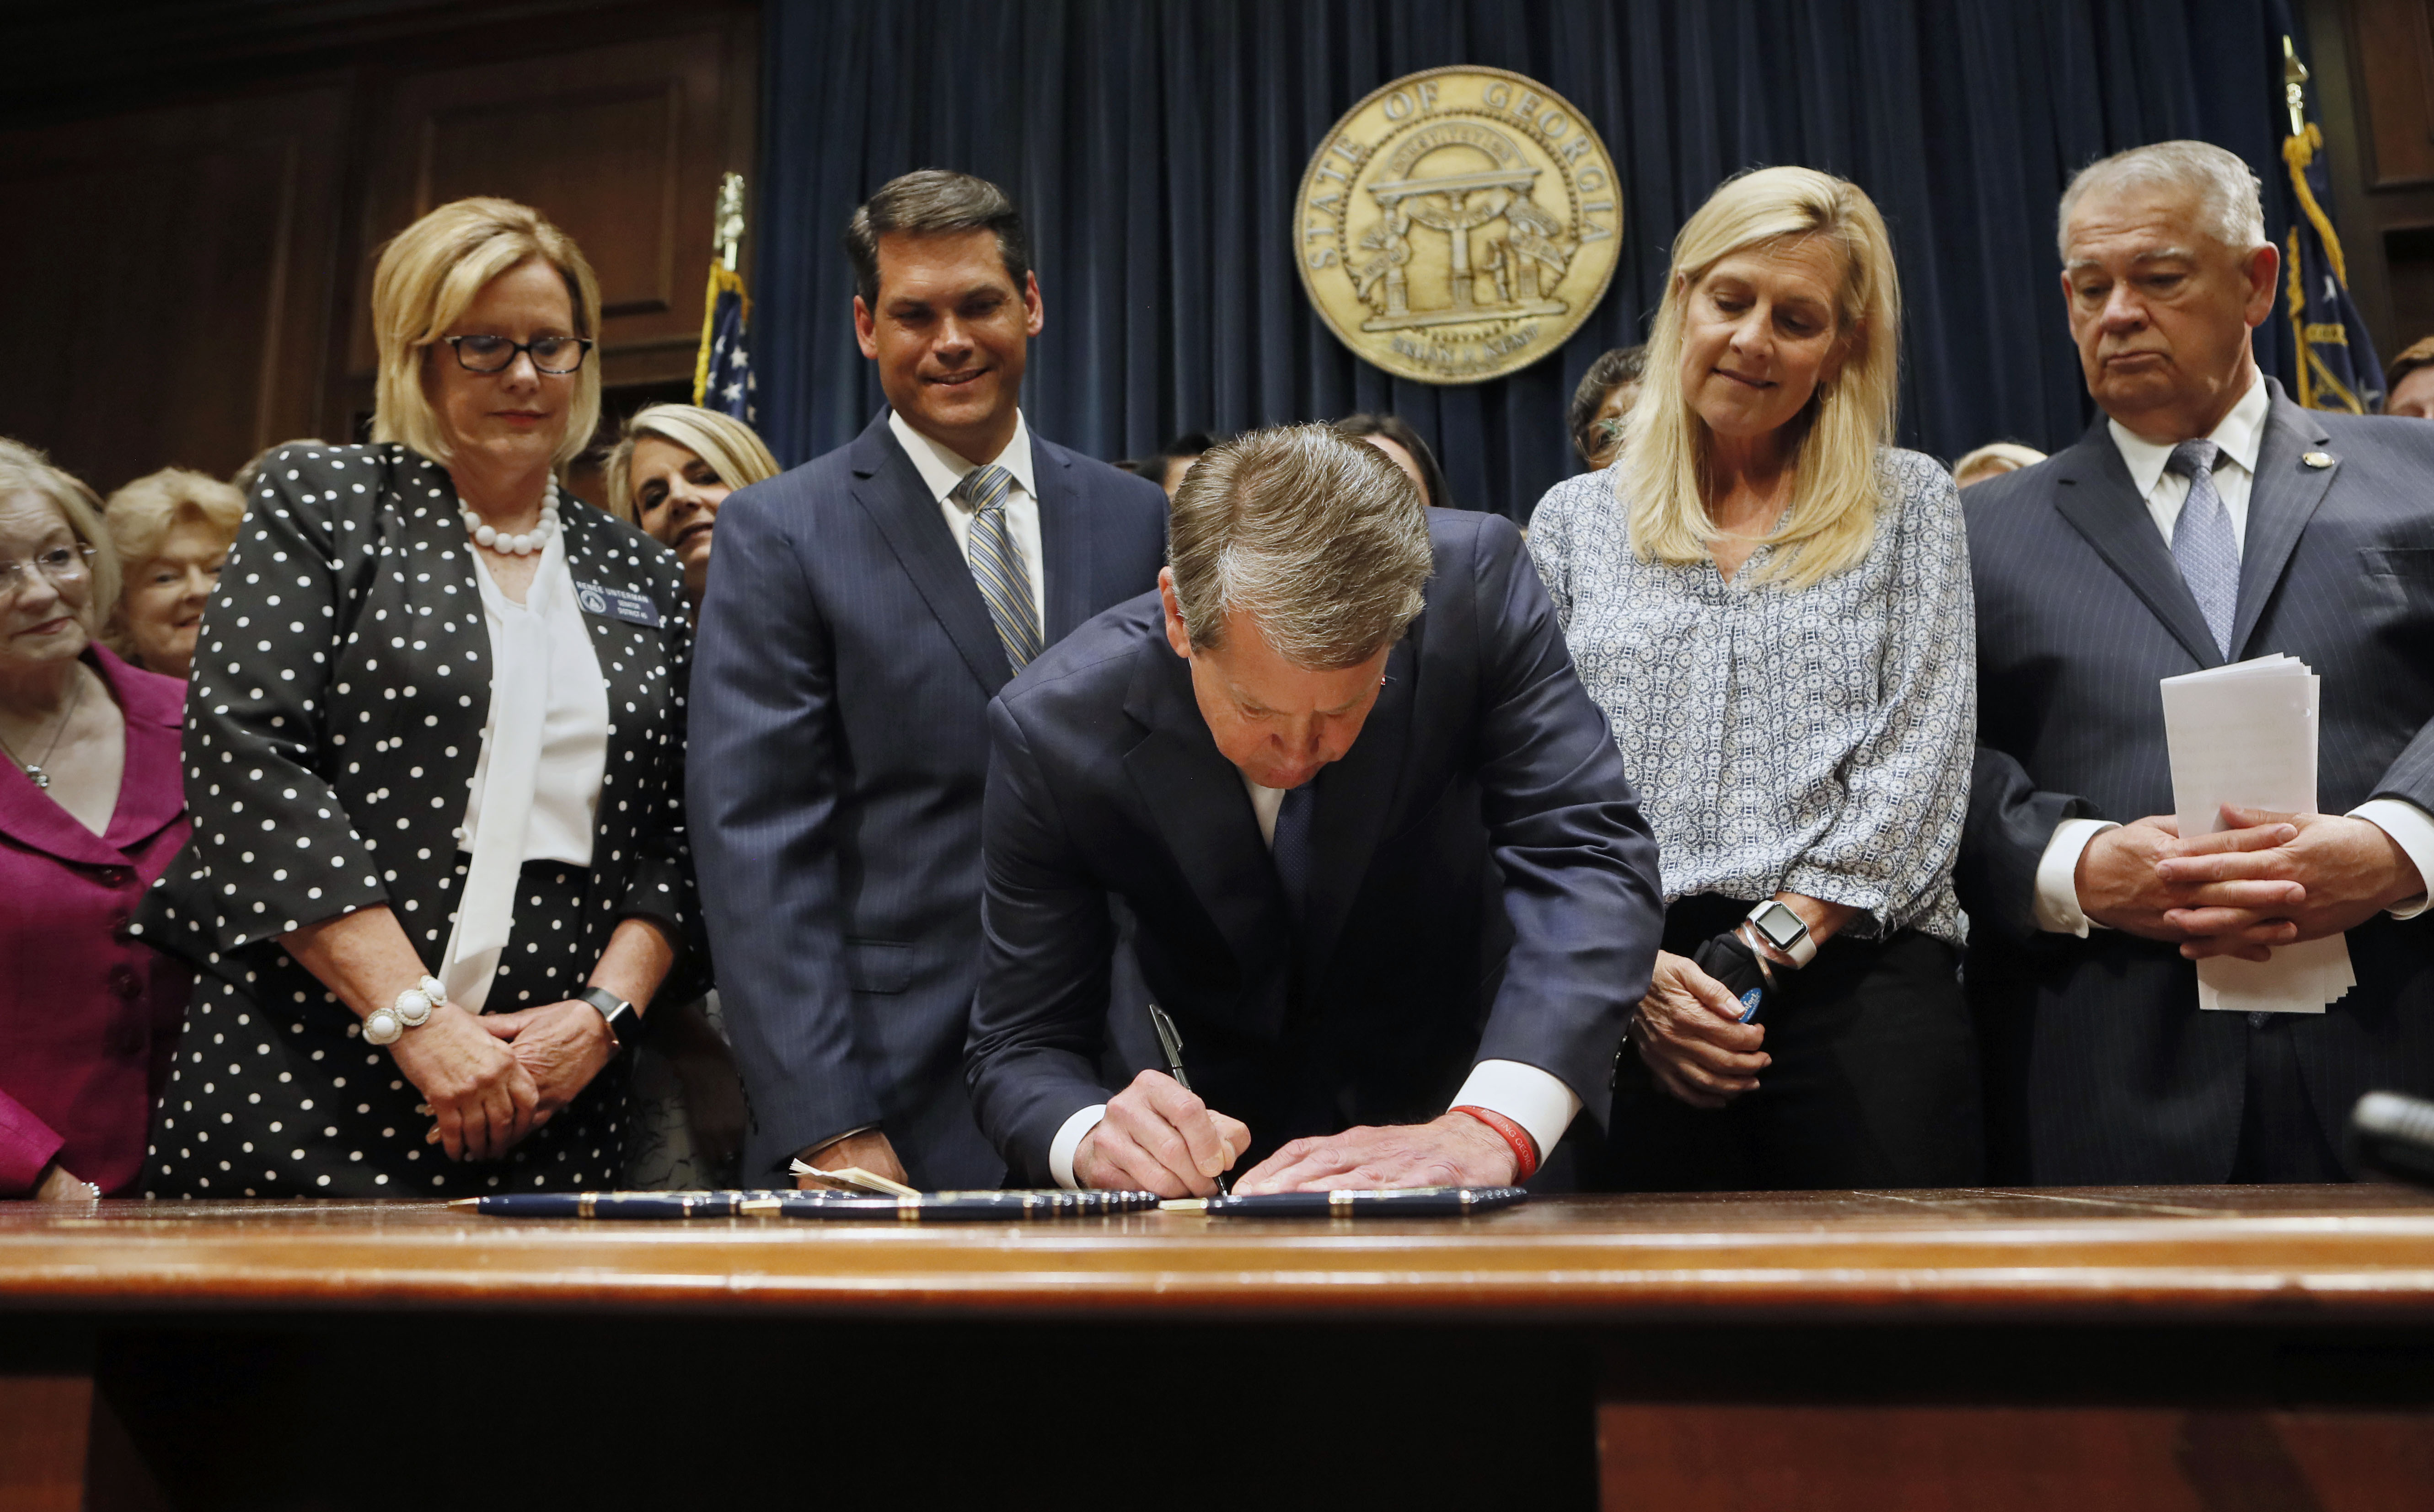 Surrounded by supporters of the bill, including Sen. Renee Unterman (from left), R  -Buford, Lt. Gov. Geoff Duncan, First Lady Marty Kemp, and House Speaker David Ralston, Gov. Brian Kemp signed HB 481, the  heartbeat bill , on Tuesday, May 7, 2019 in Atlanta, setting the stage for a legal battle as the state attempts to outlaw most abortions after about six weeks of pregnancy.